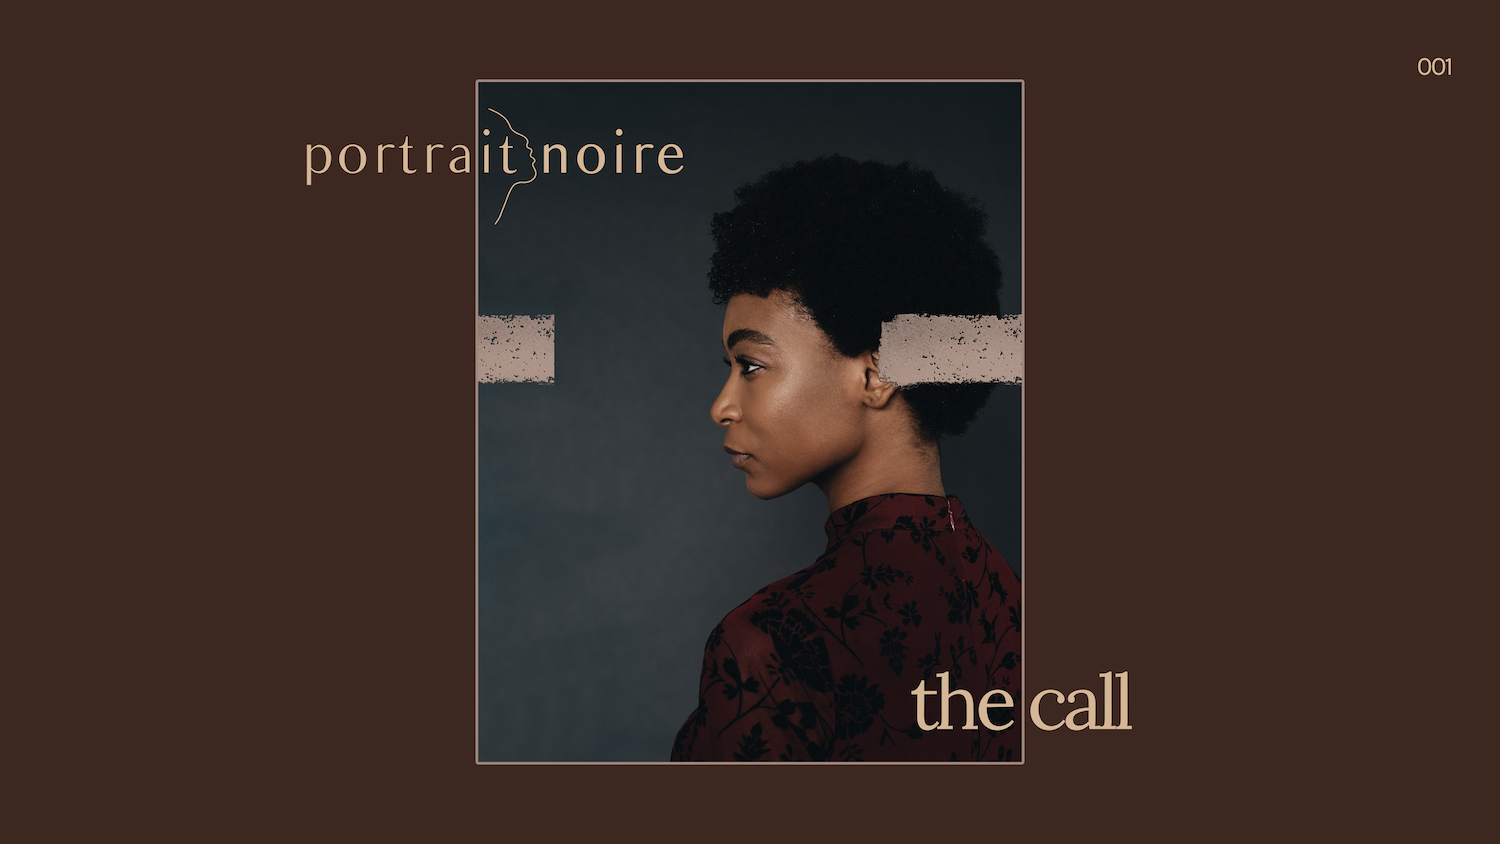 portraitnoire the call instagram meet